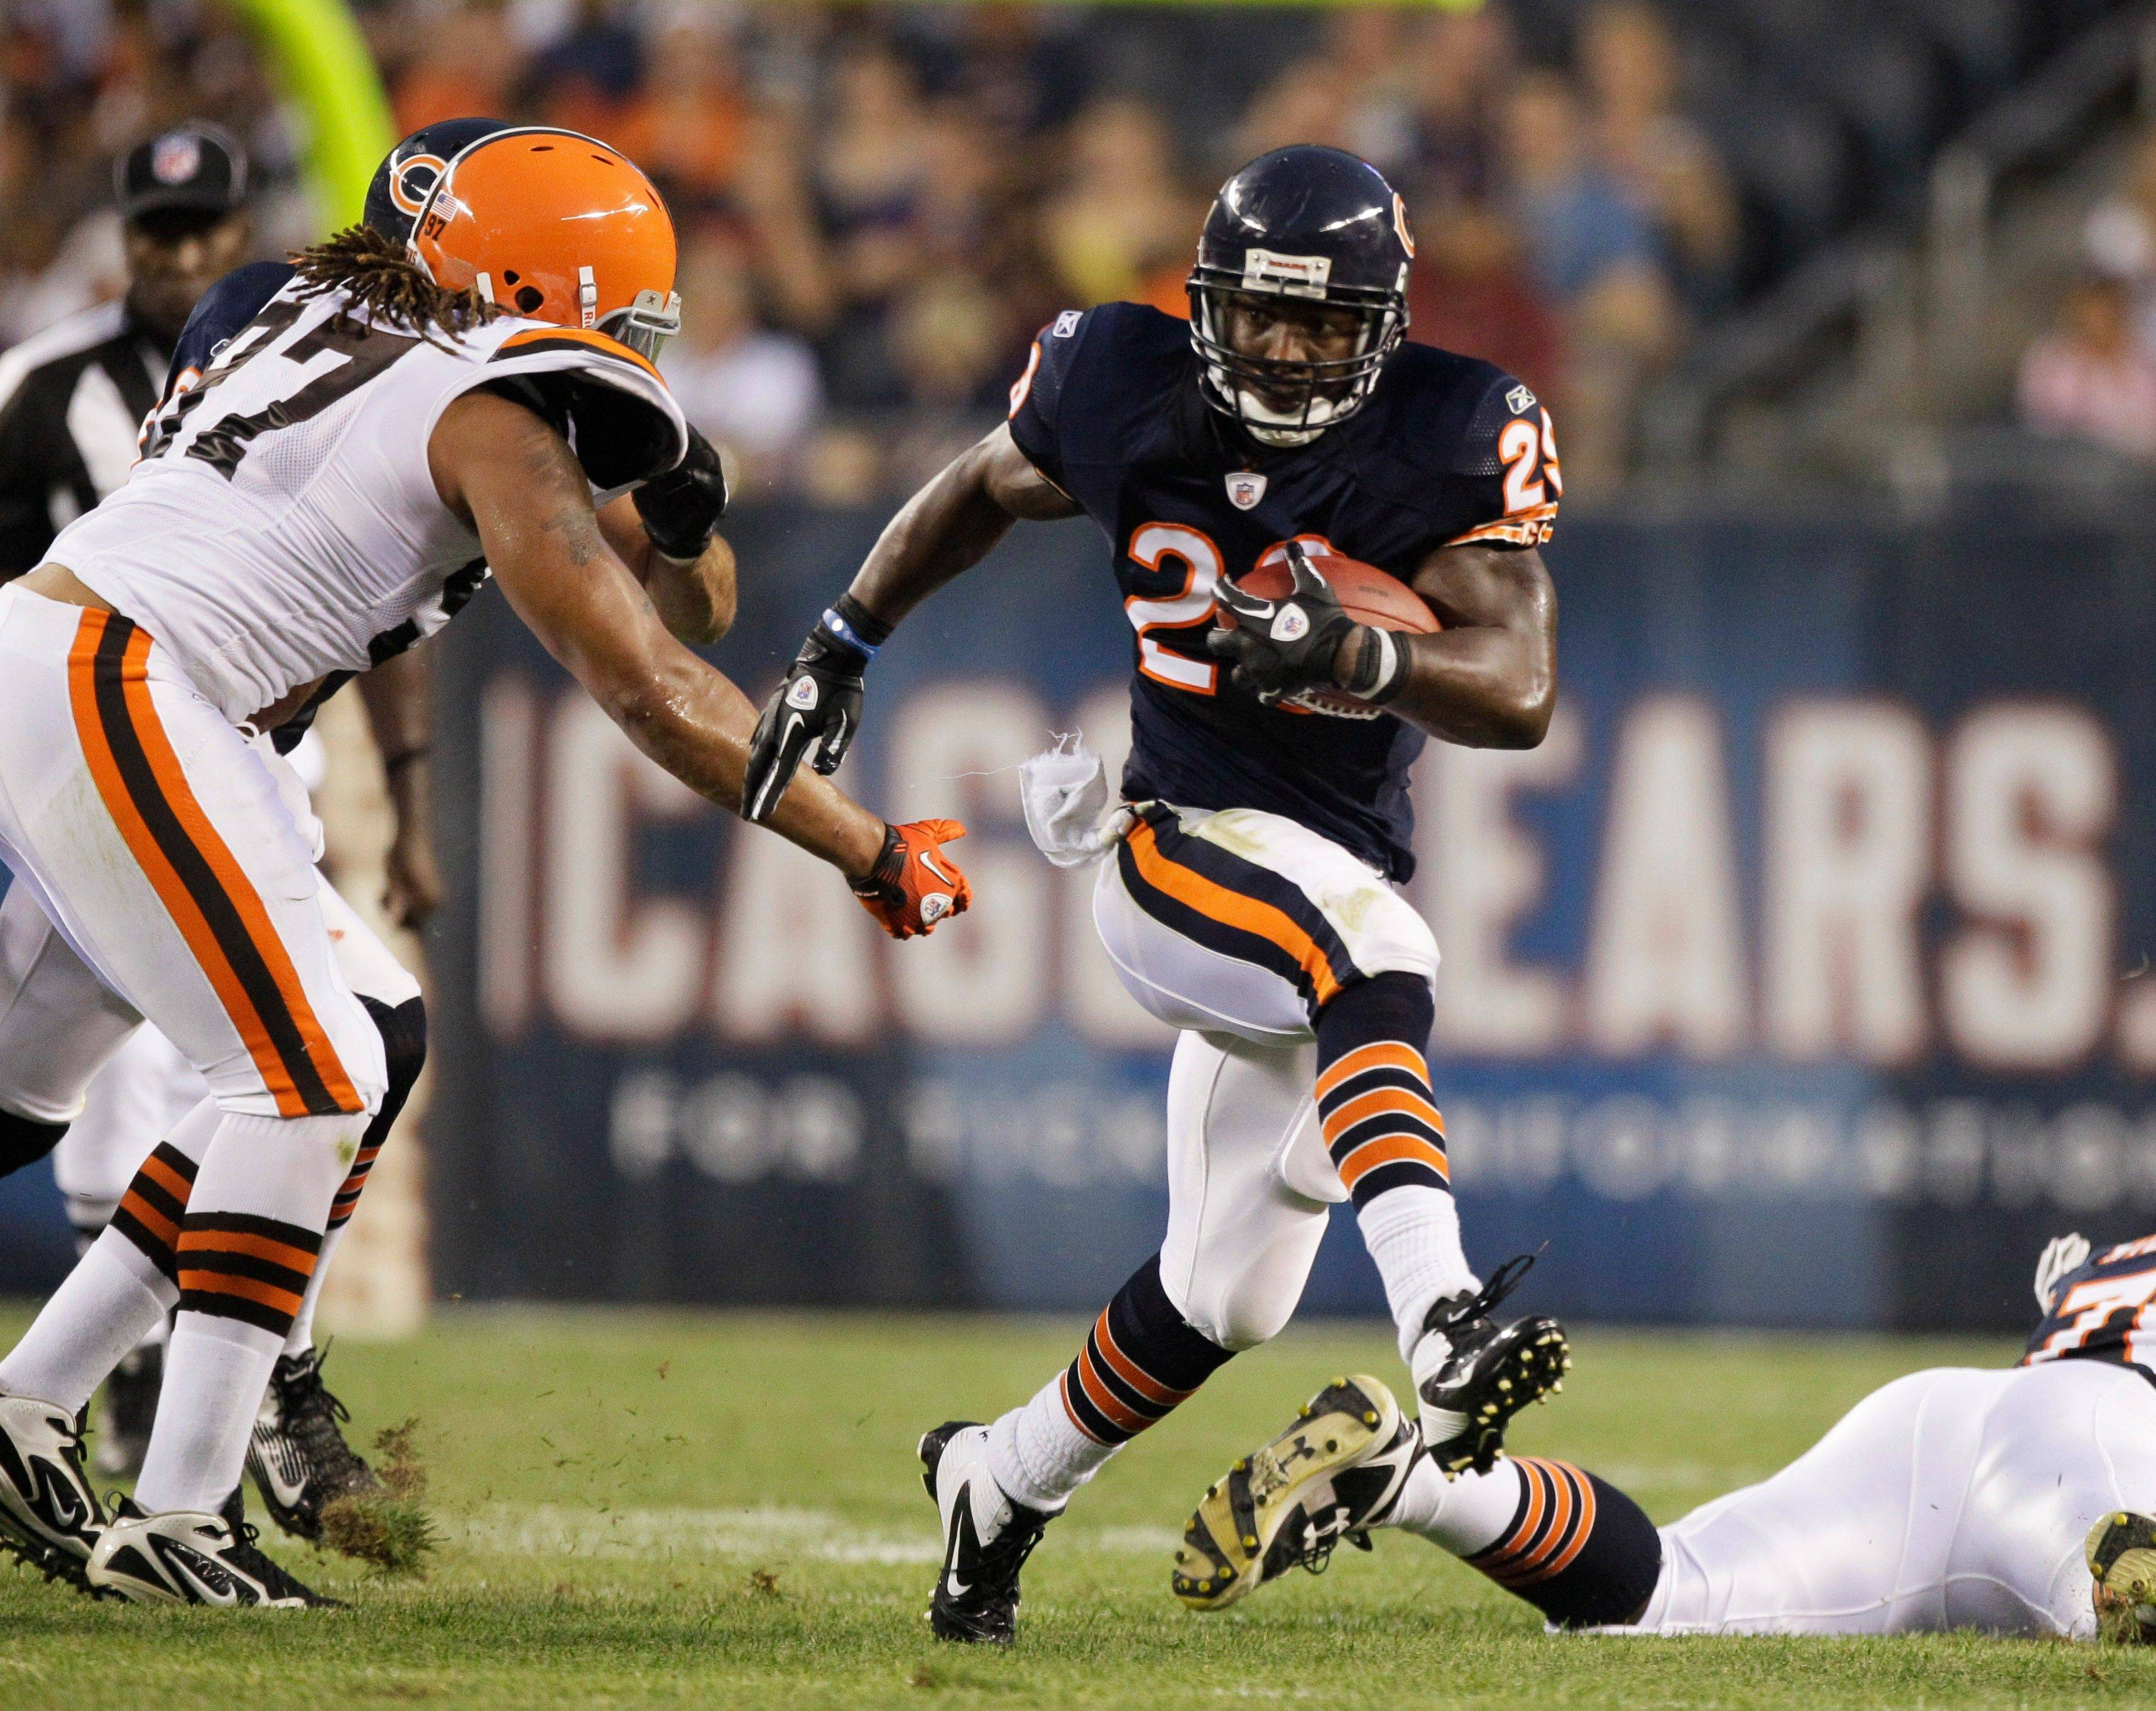 Chicago Bears running back Chester Taylor runs past Cleveland Browns defensive lineman Jabaal Sheard in the first half .